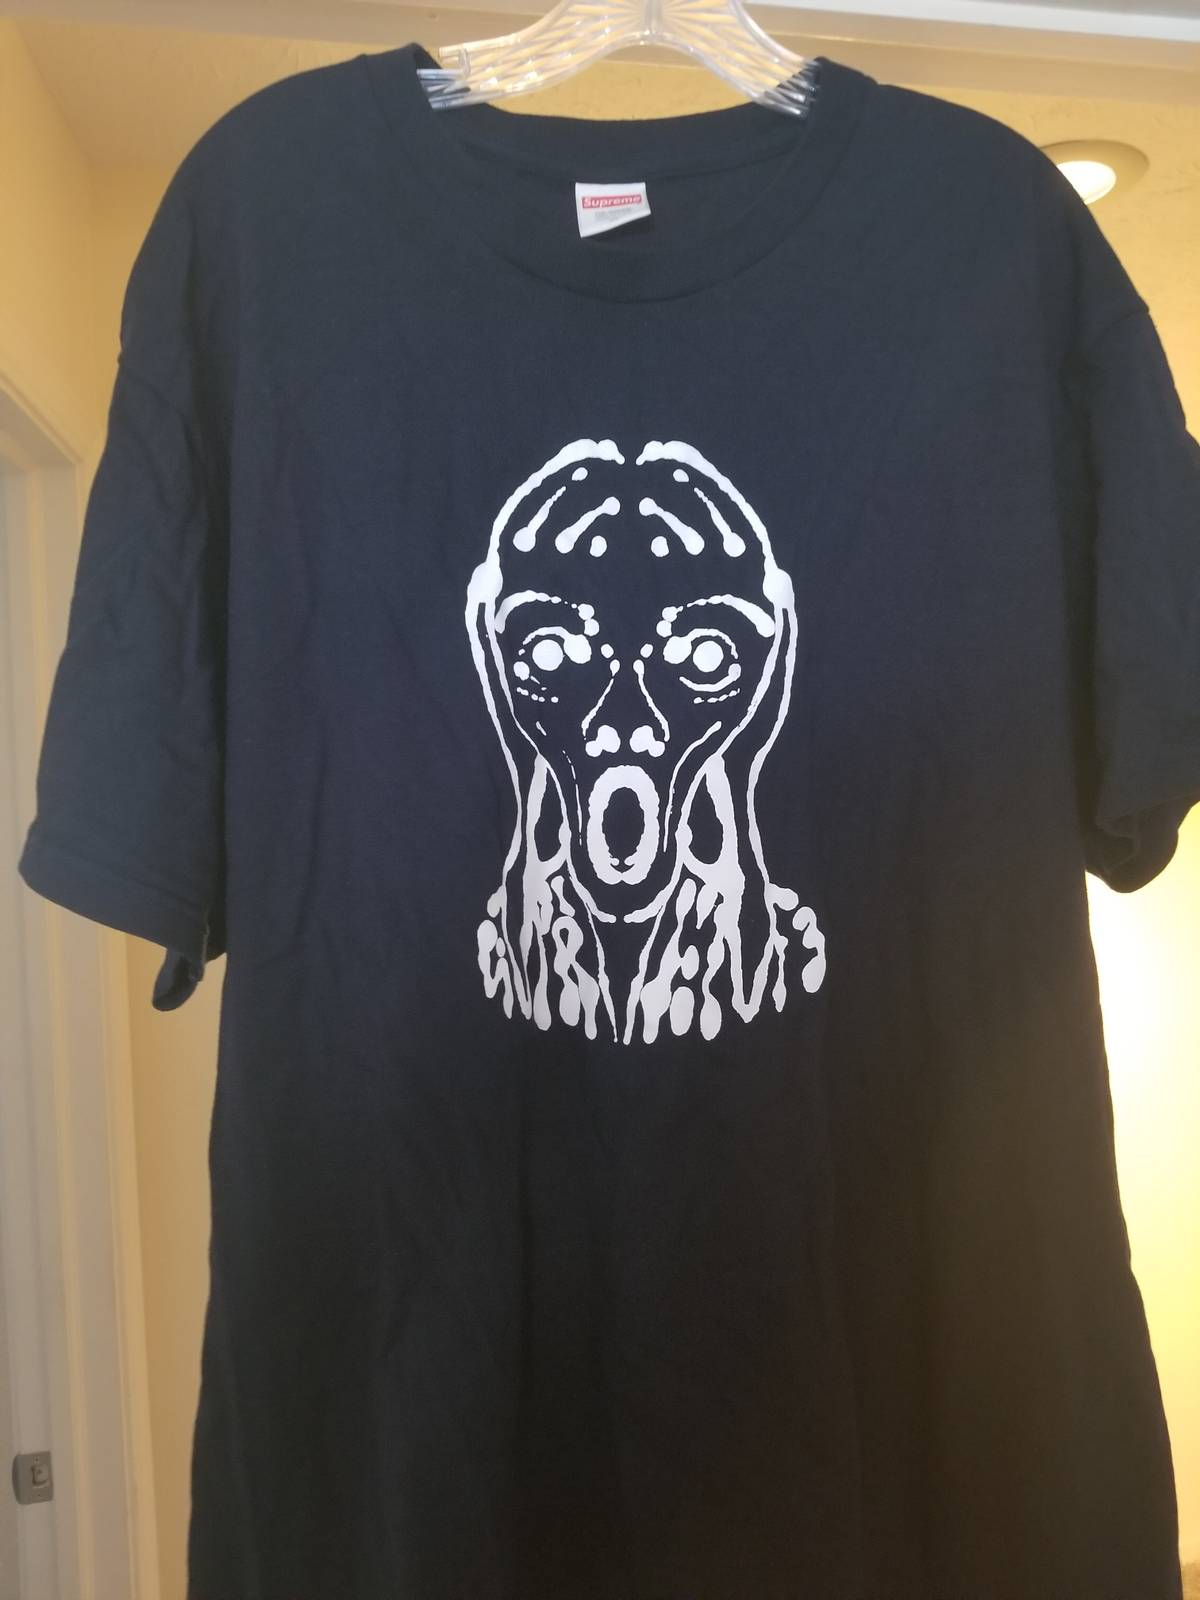 87a663683866 Supreme Supreme Scream Tee Navy Size xl - Short Sleeve T-Shirts for Sale -  Grailed